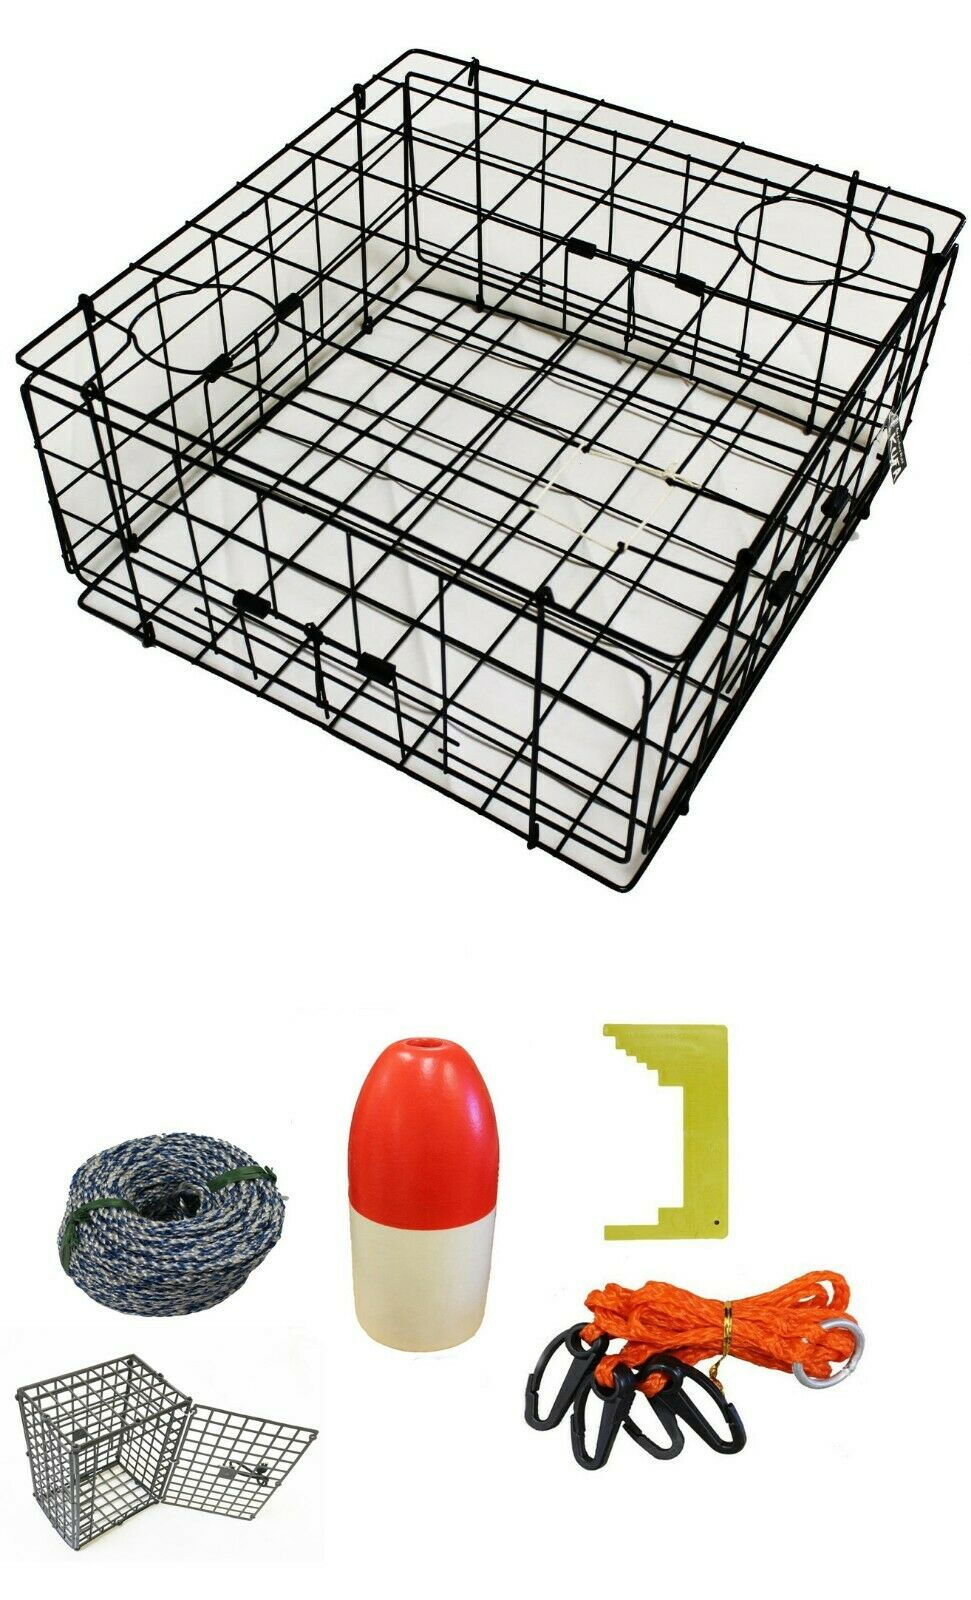 KUFA 24x24x12 Vinyl Coated Crab Trap & All Included Accessory kit S60CES1